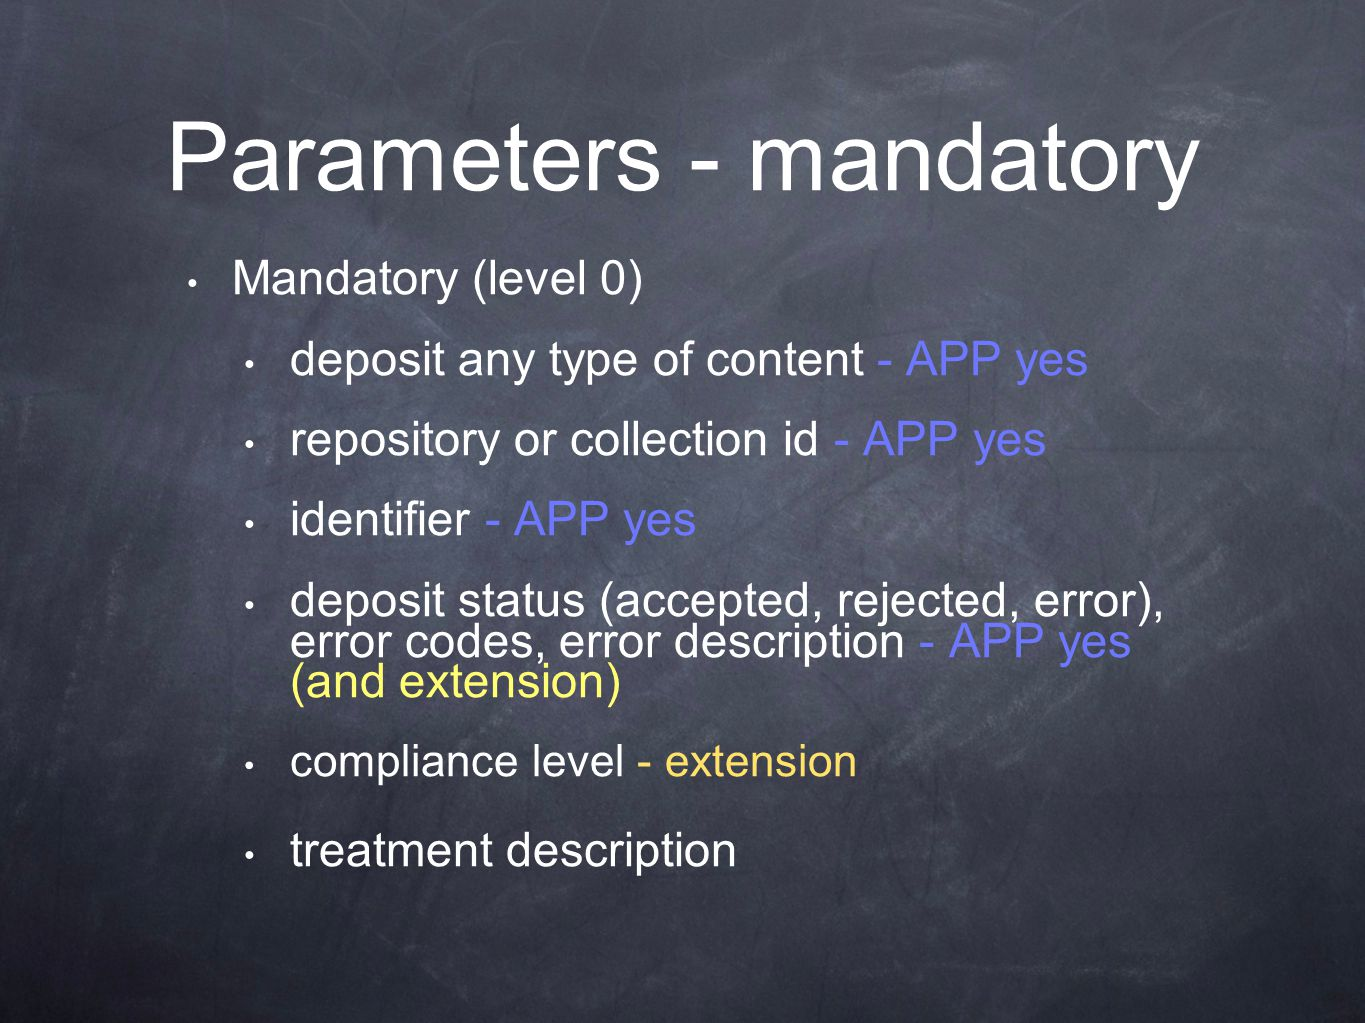 Parameters - mandatory Mandatory (level 0) deposit any type of content - APP yes repository or collection id - APP yes identifier - APP yes deposit status (accepted, rejected, error), error codes, error description - APP yes (and extension) compliance level - extension treatment description